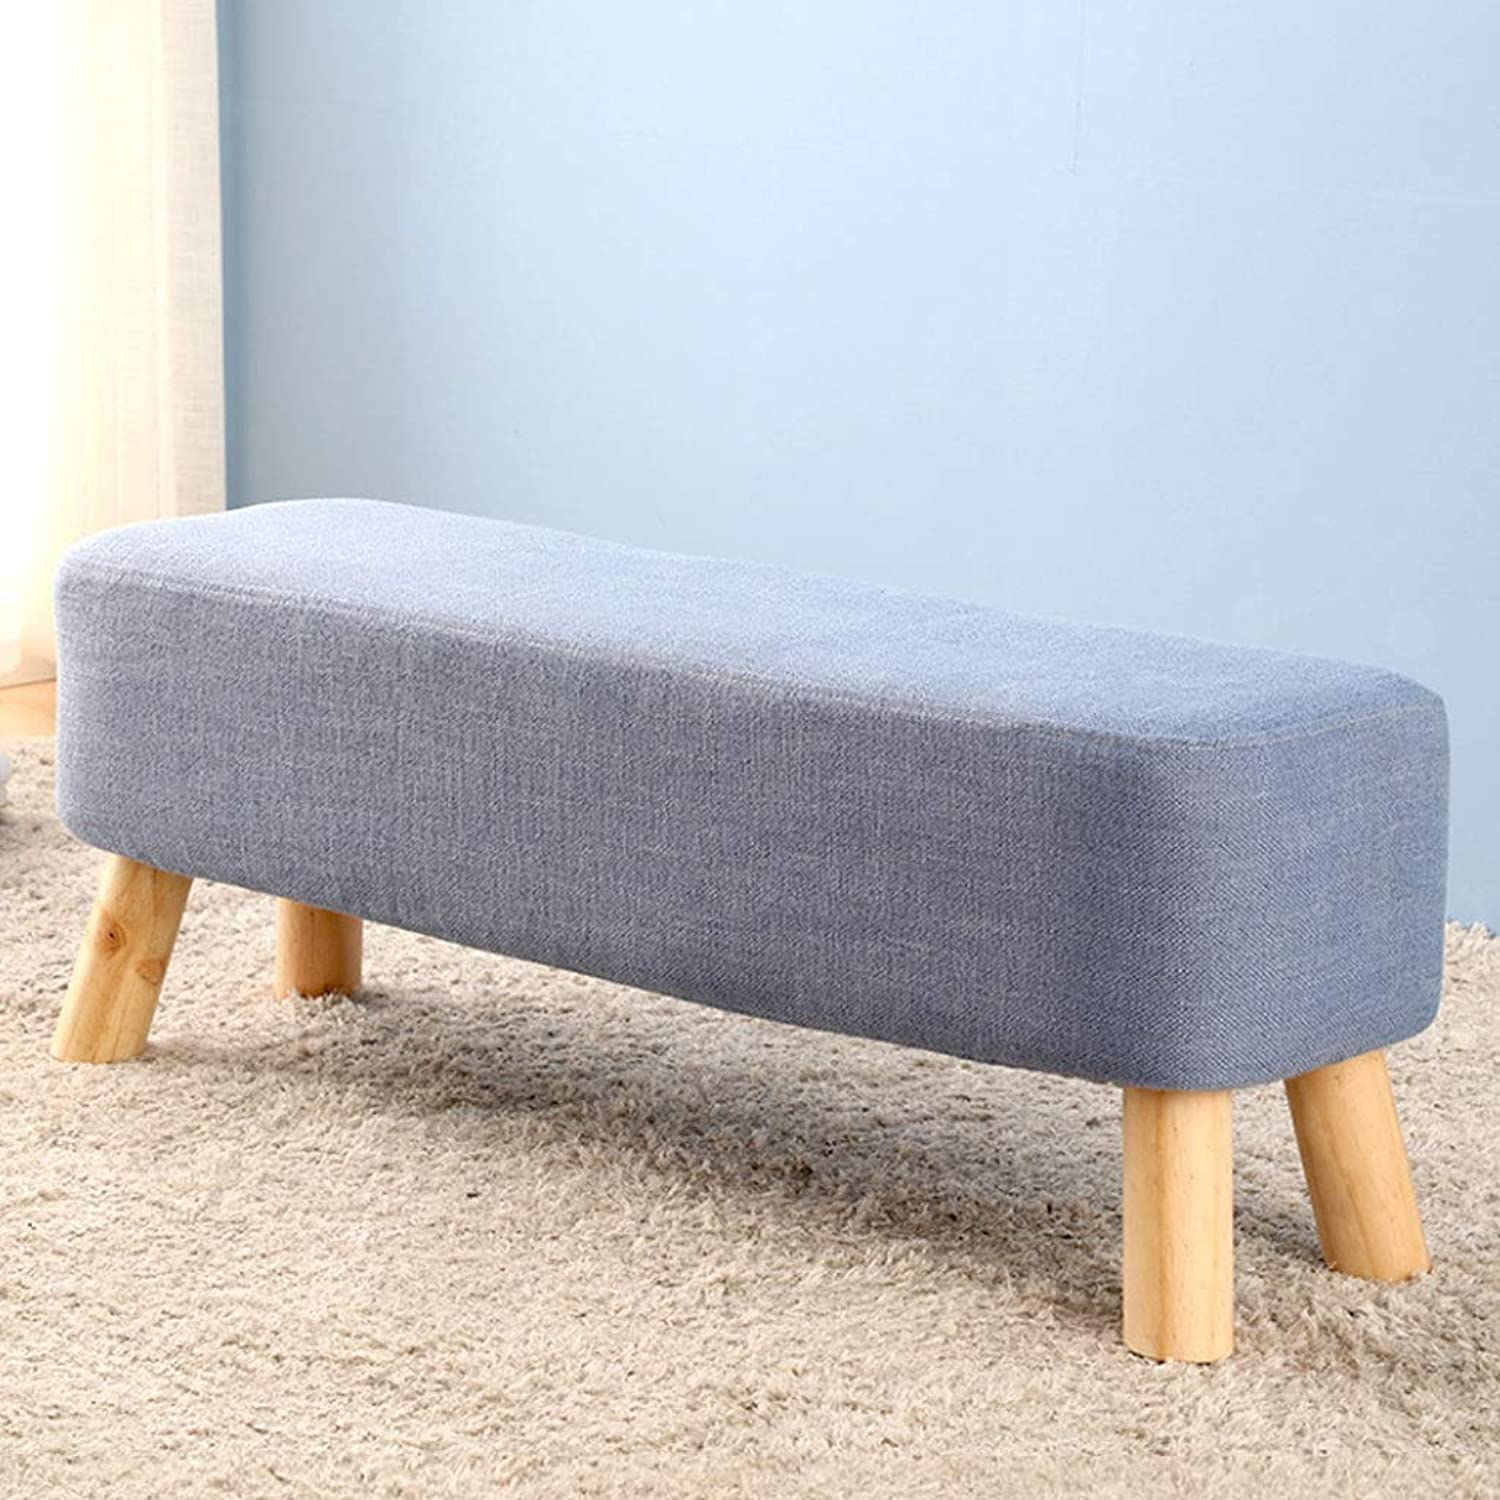 ZXW STOOLS- Cloth Change shoes Stool Door Sofa Stool Solid Wood Small Bench Wear shoes Stool (color   bluee, Size   90x29.5x35cm)